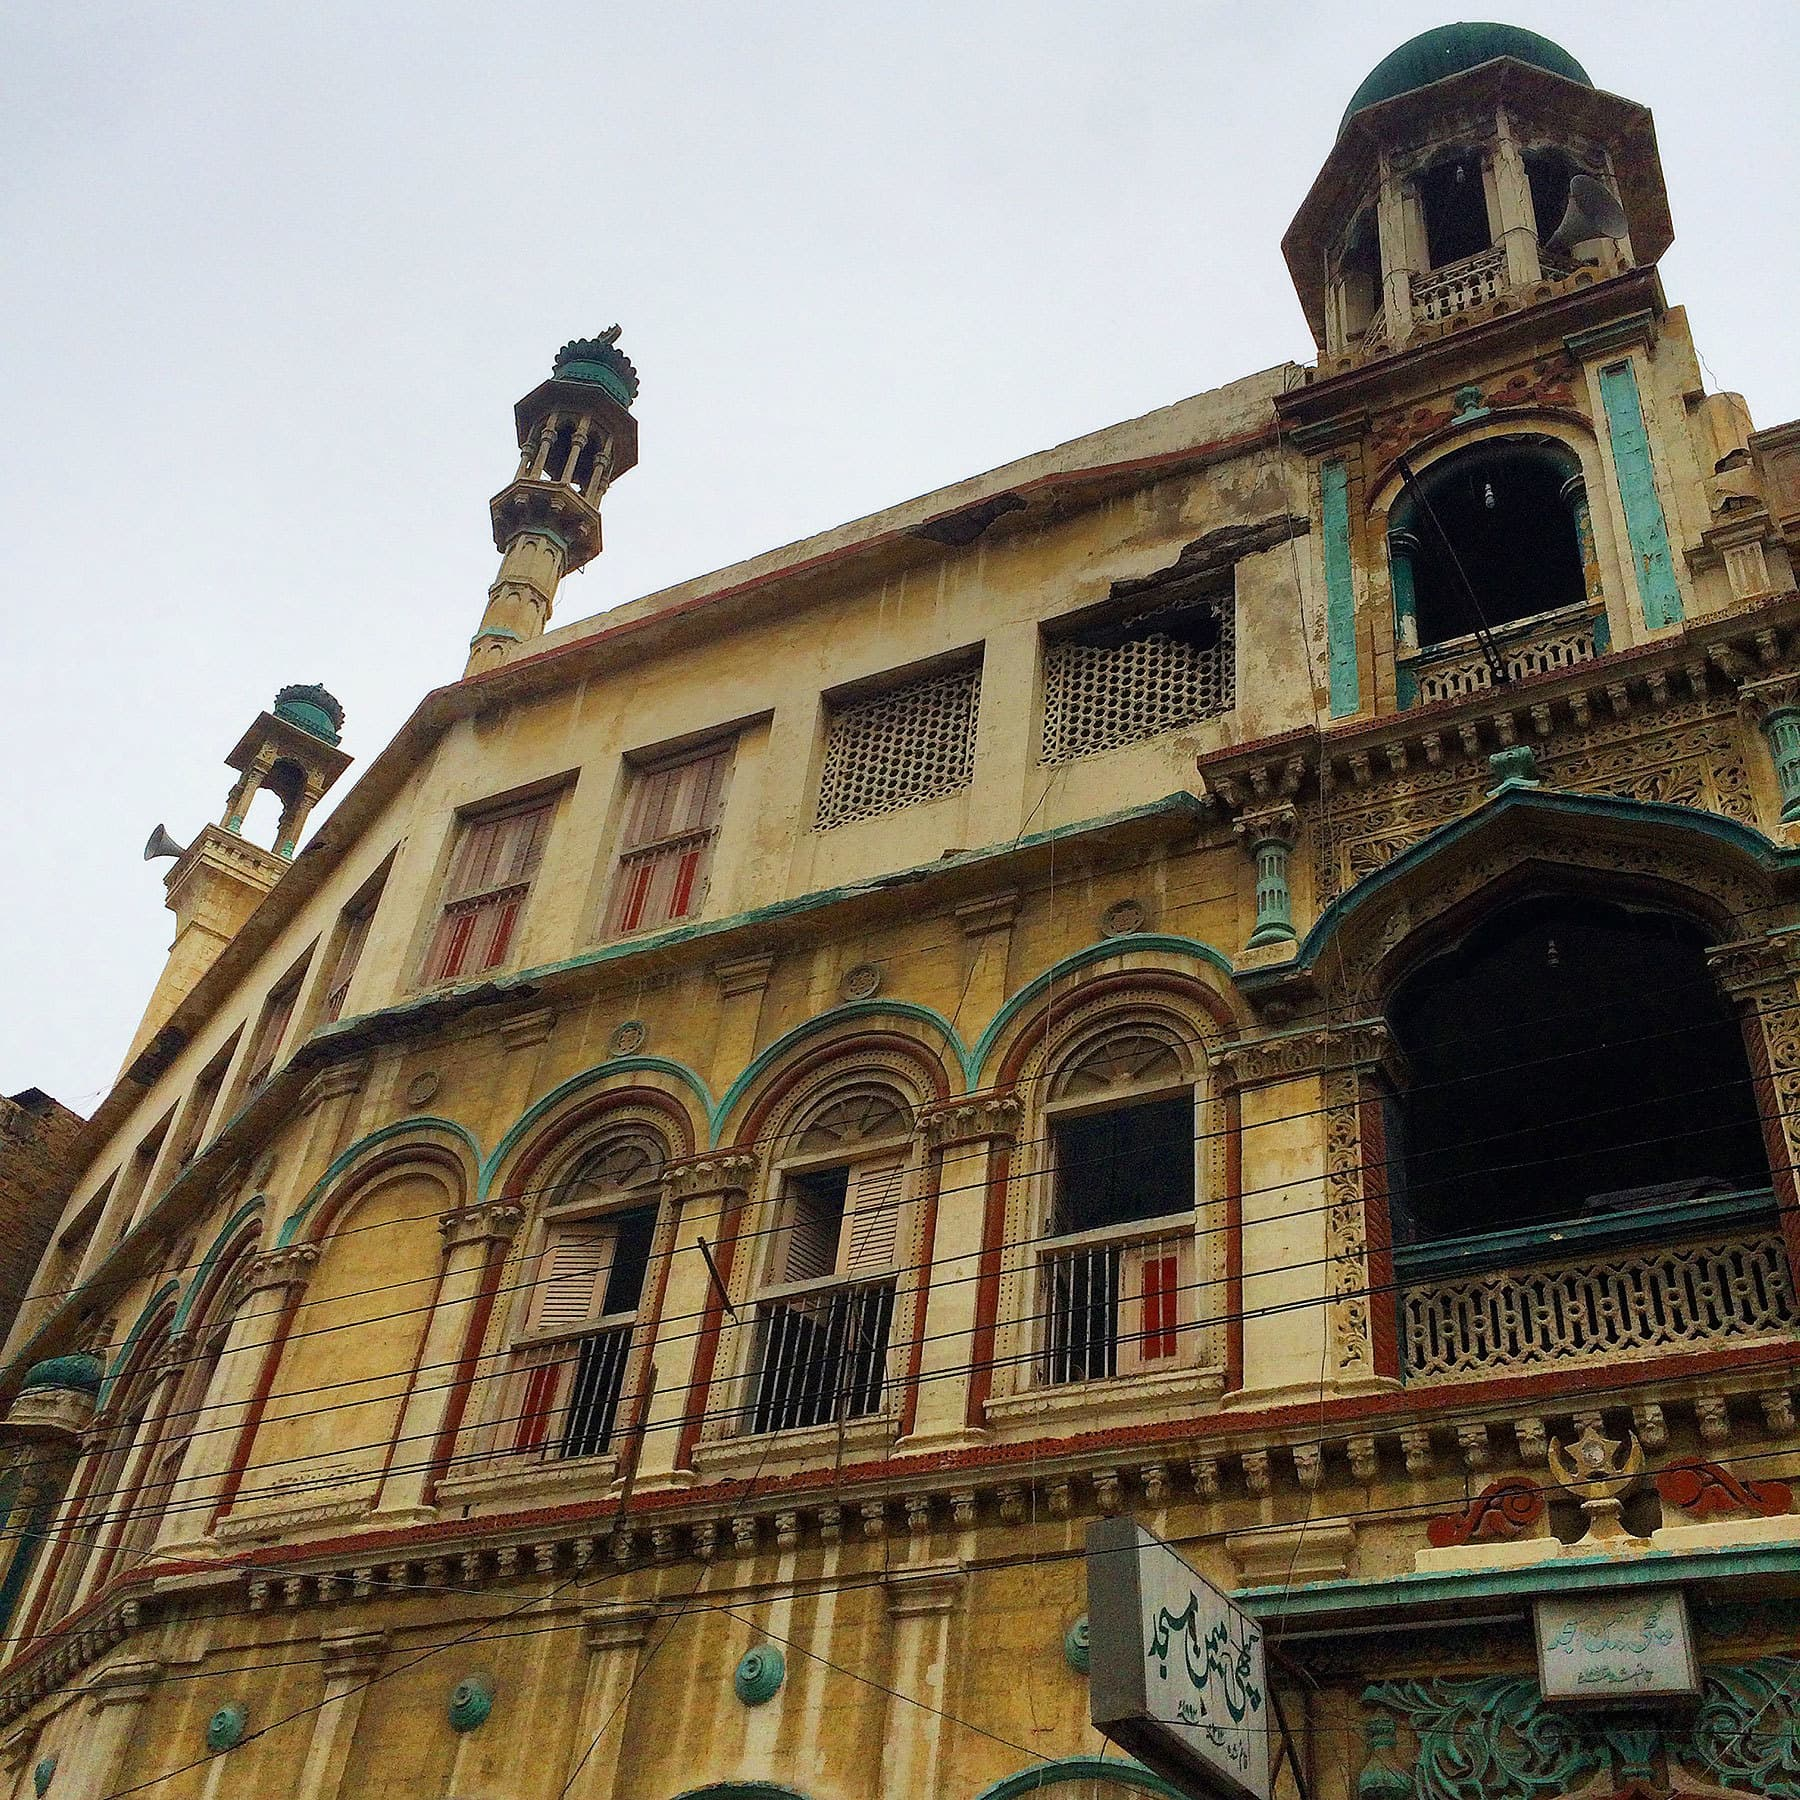 Built by the Memon community in 1893, this mosque is one of the oldest in Karachi.